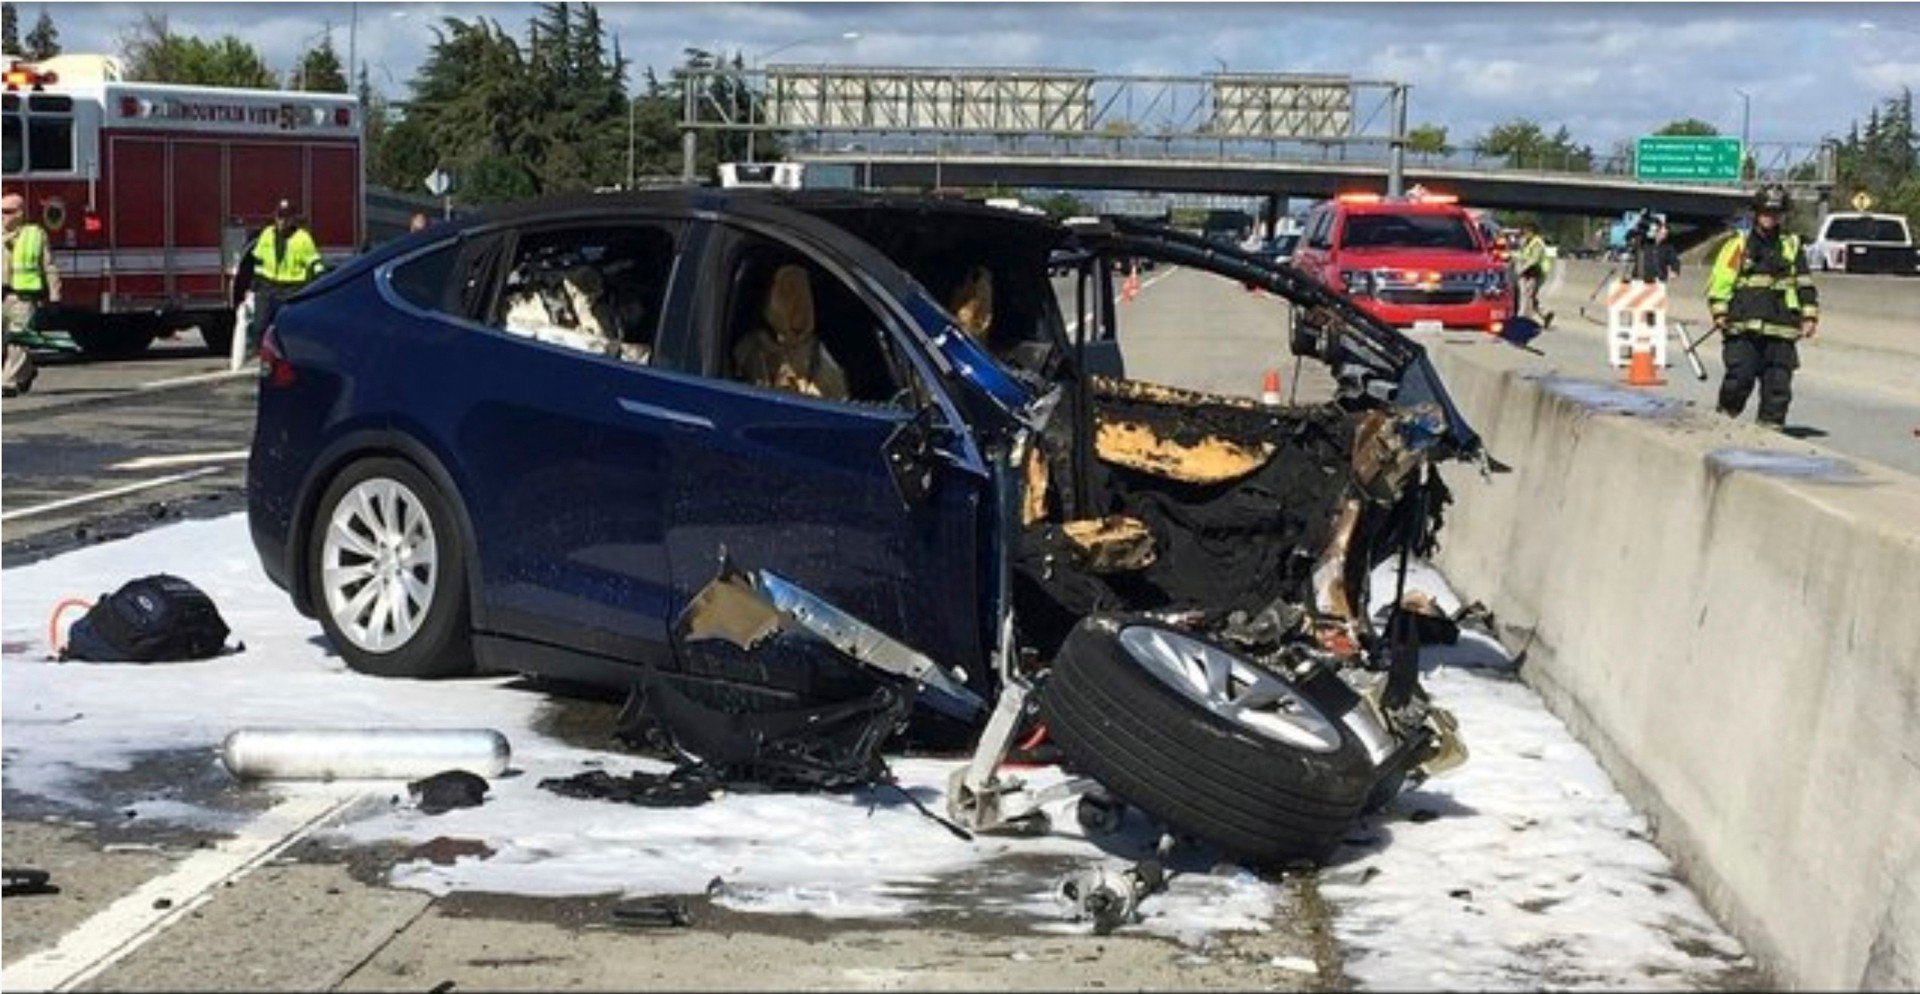 Tesla woes following fatal crash dent Elon Musk's fortune and chance